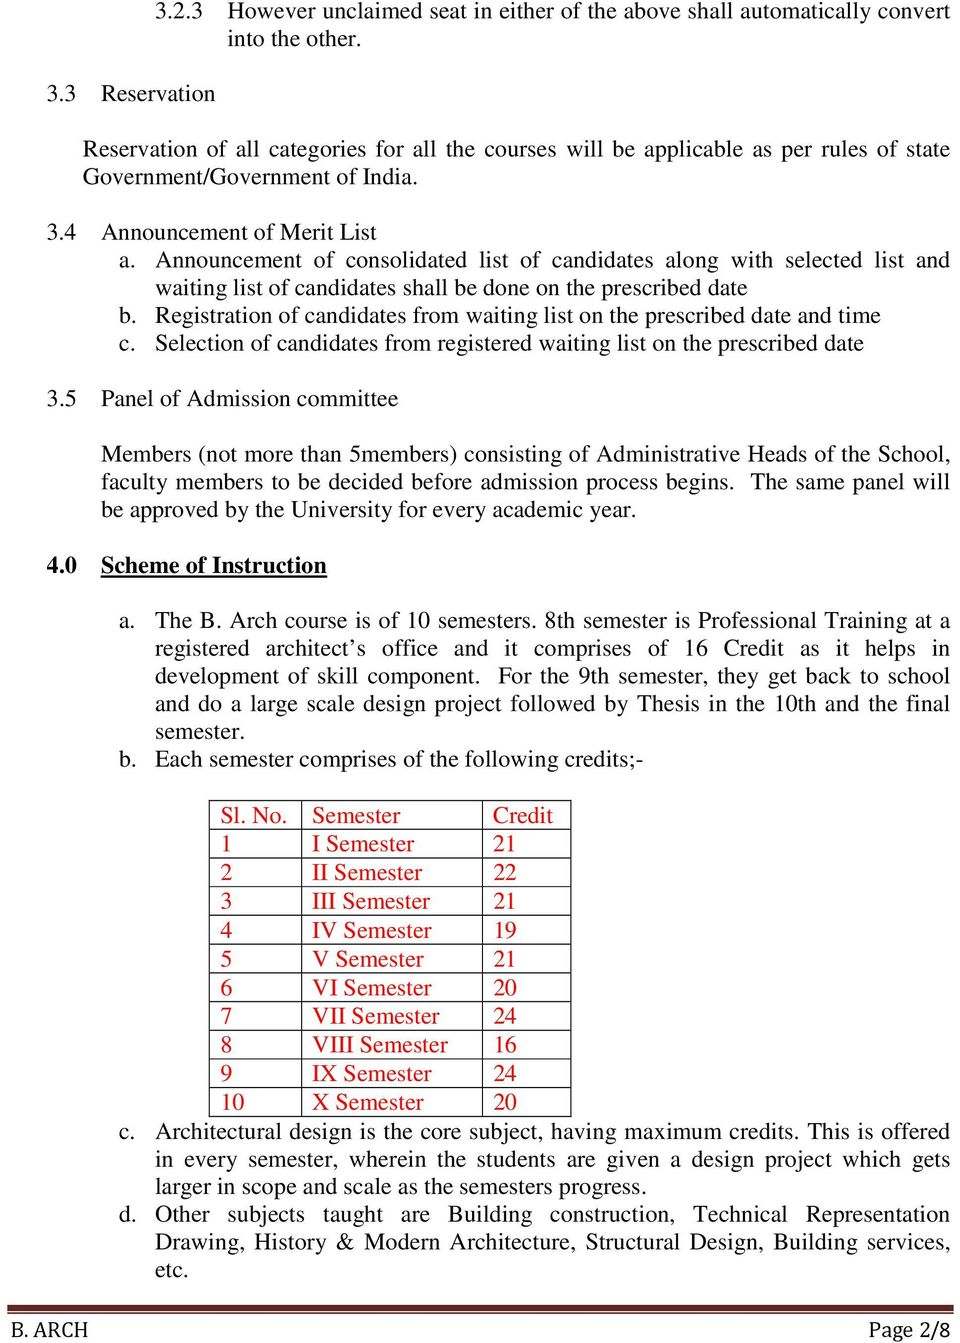 Announcement of consolidated list of candidates along with selected list and waiting list of candidates shall be done on the prescribed date b.